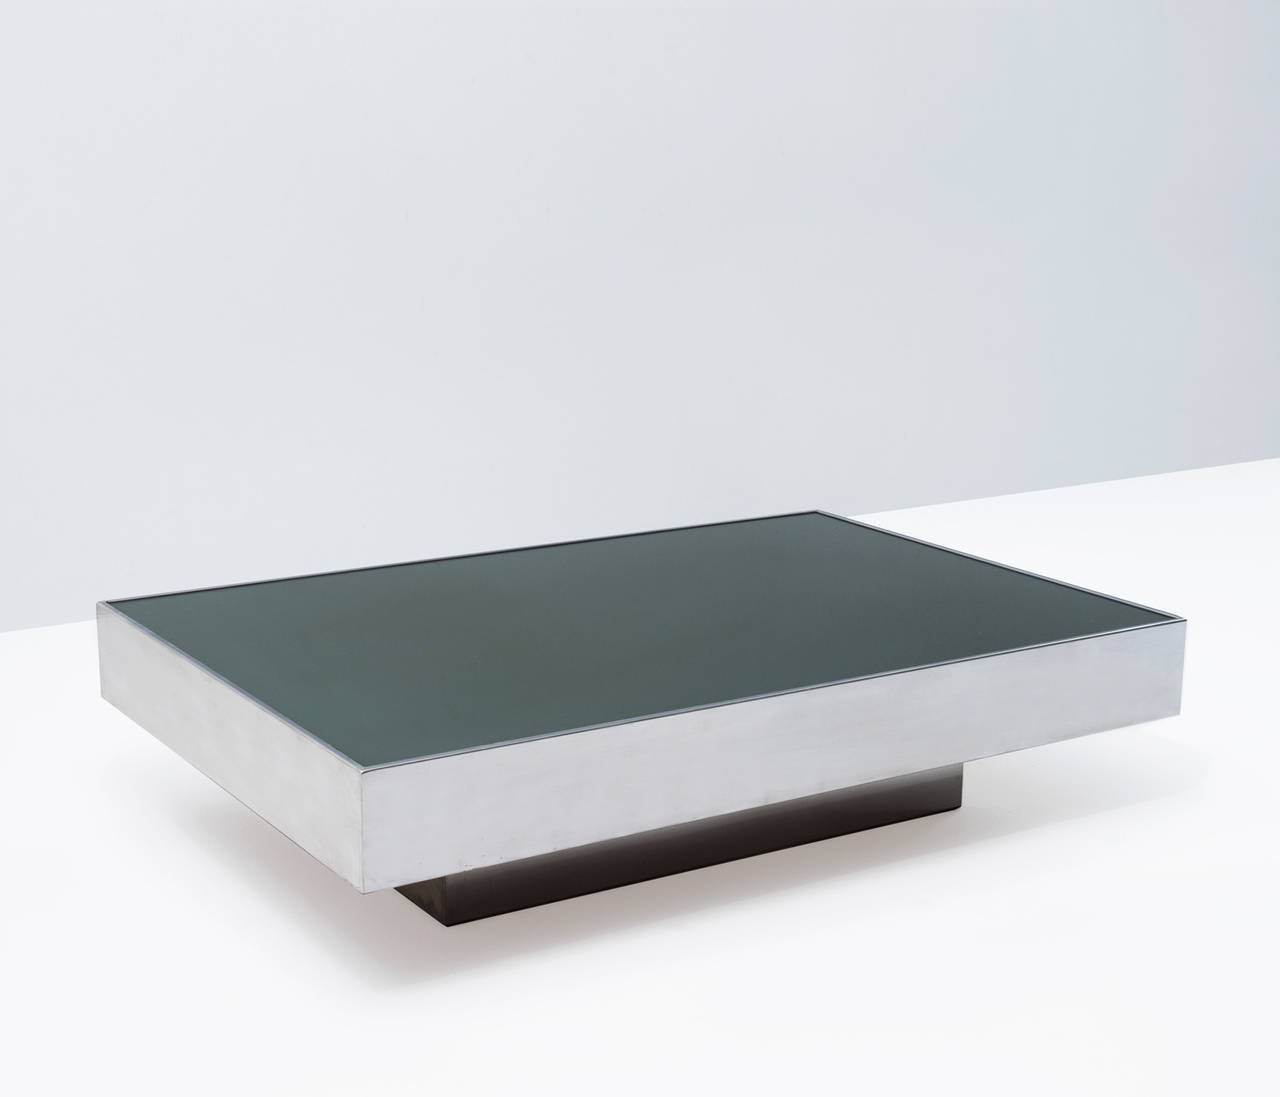 Chrome Coffee Table Items: Chrome Coffee Table Green Glass Top For Sale At 1stdibs